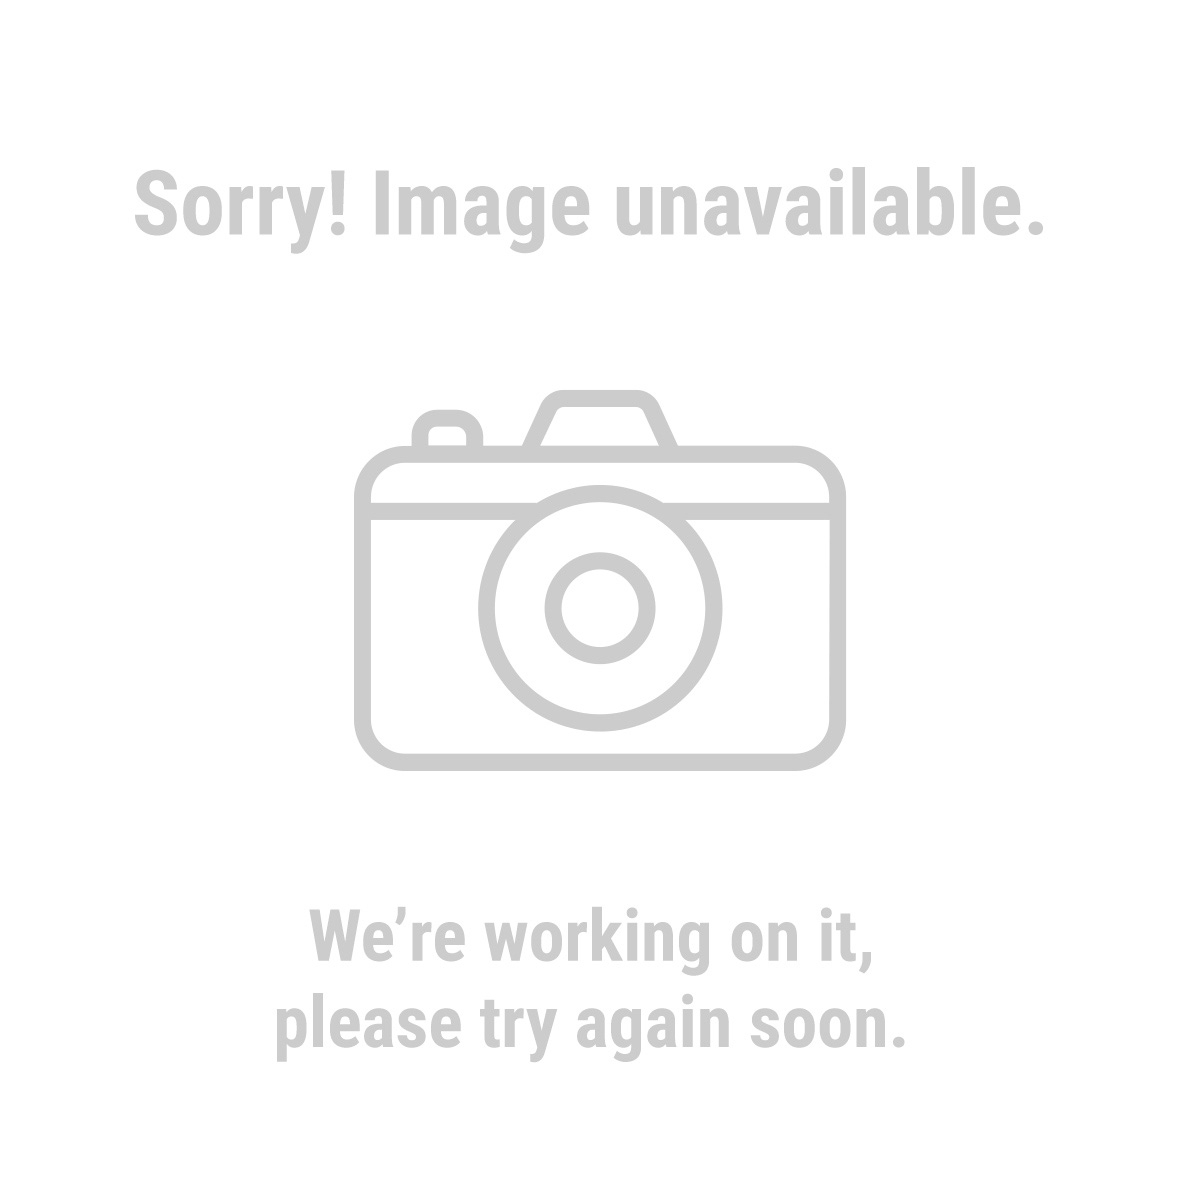 Central Pneumatic 95810 Deluxe Airbrush Kit